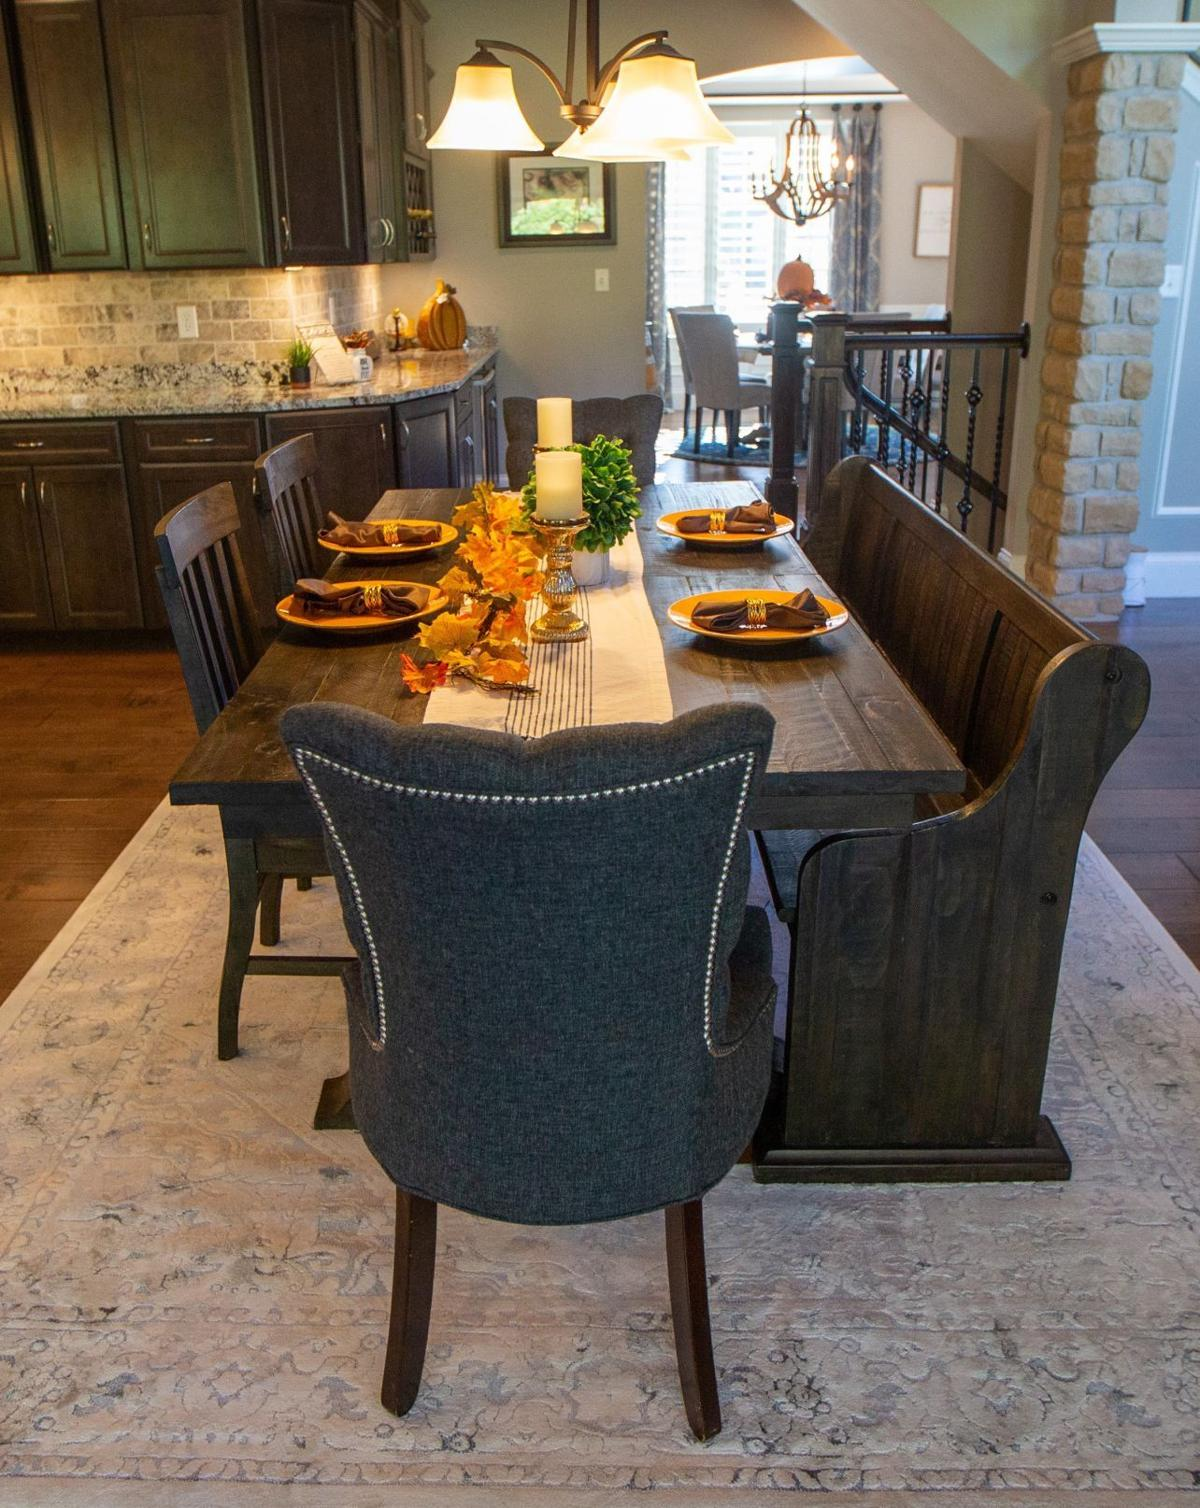 At home with Ashley and Trey Dorman